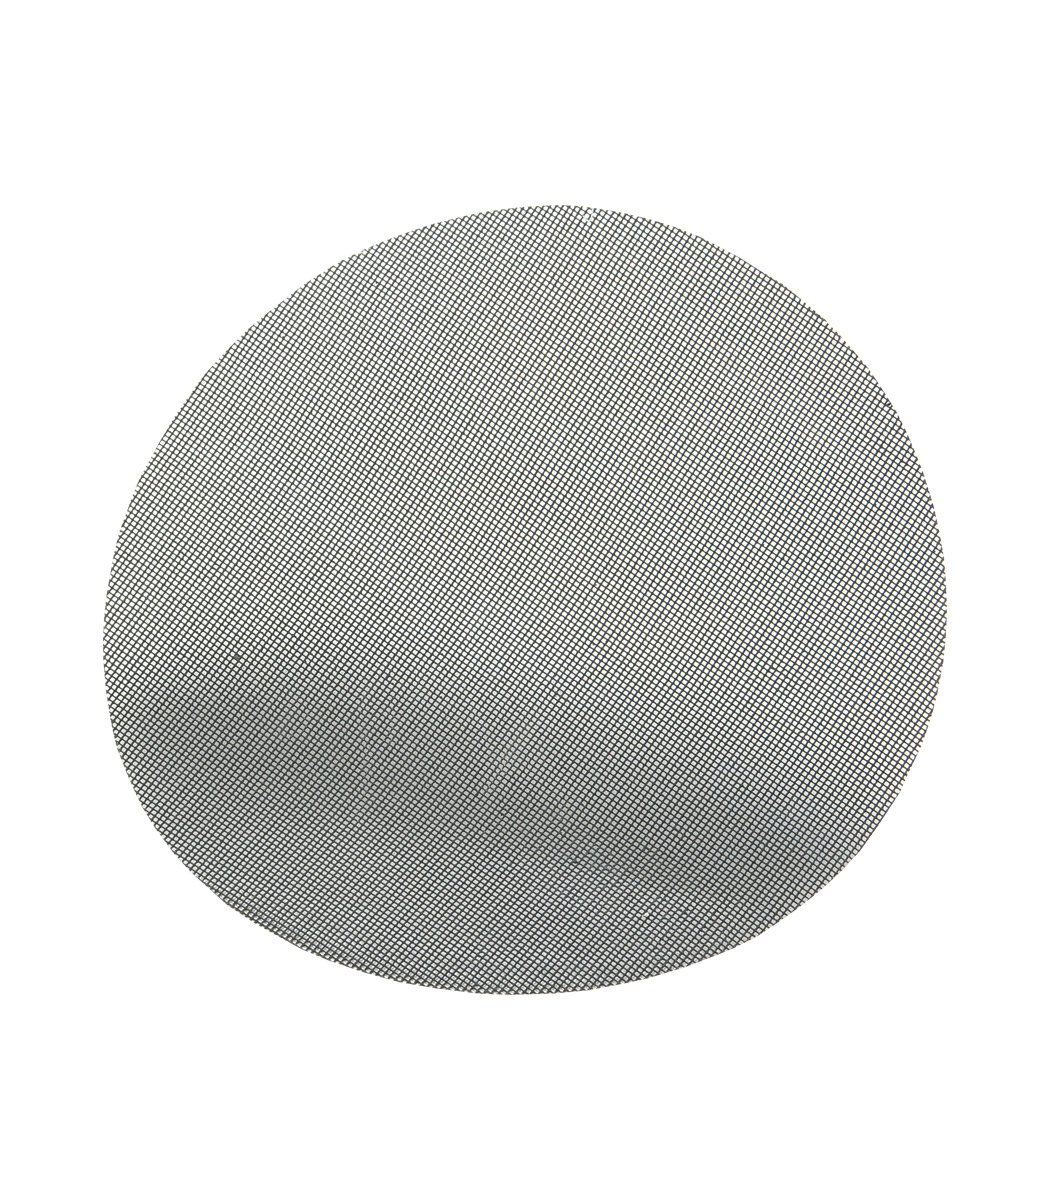 Sungold Abrasives 81405 Silicon Carbide 60 Grit Screen Sanding Discs 10-Pack 16 16 8140599